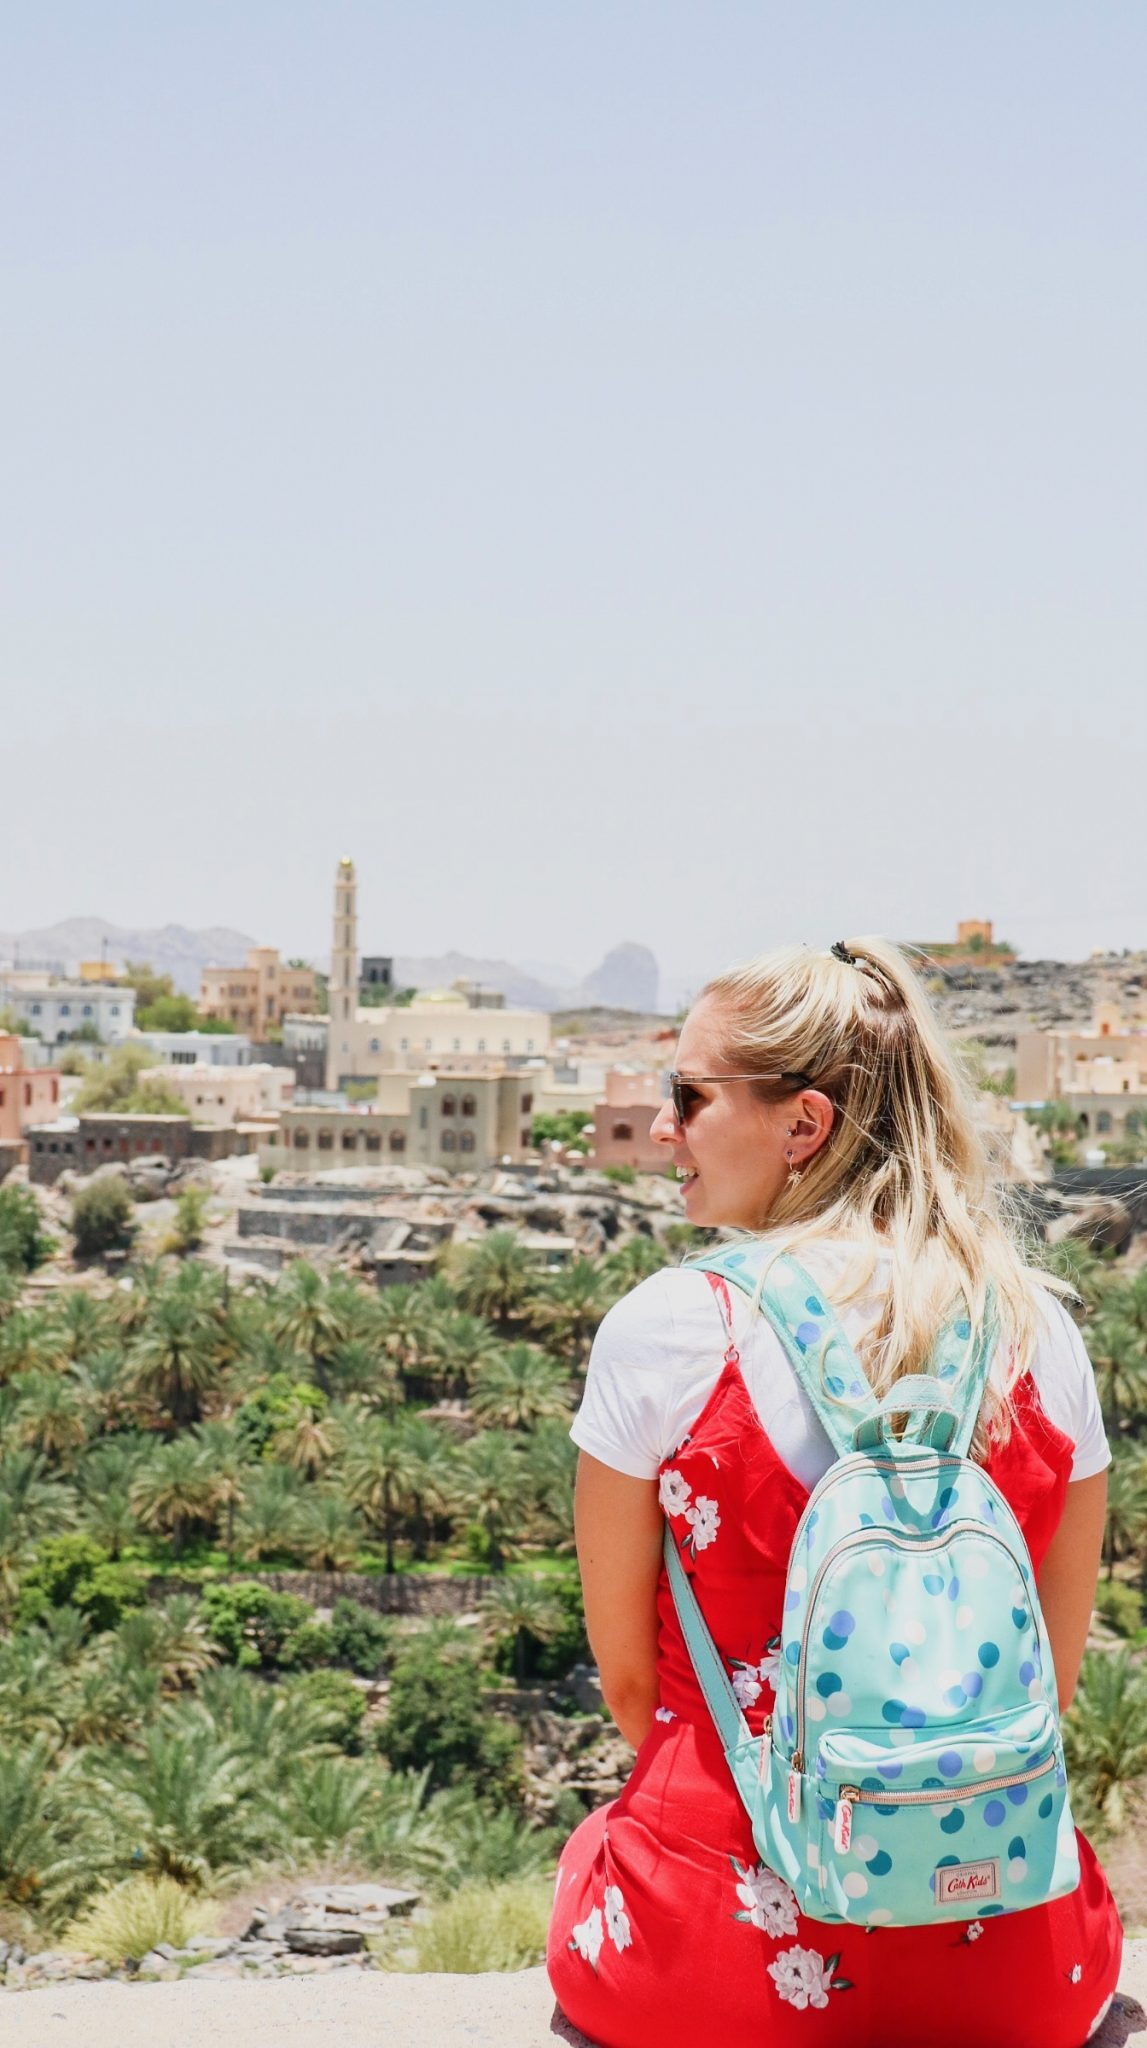 Oman Road Trip from Dubai + Places to Stop - Misfat Village